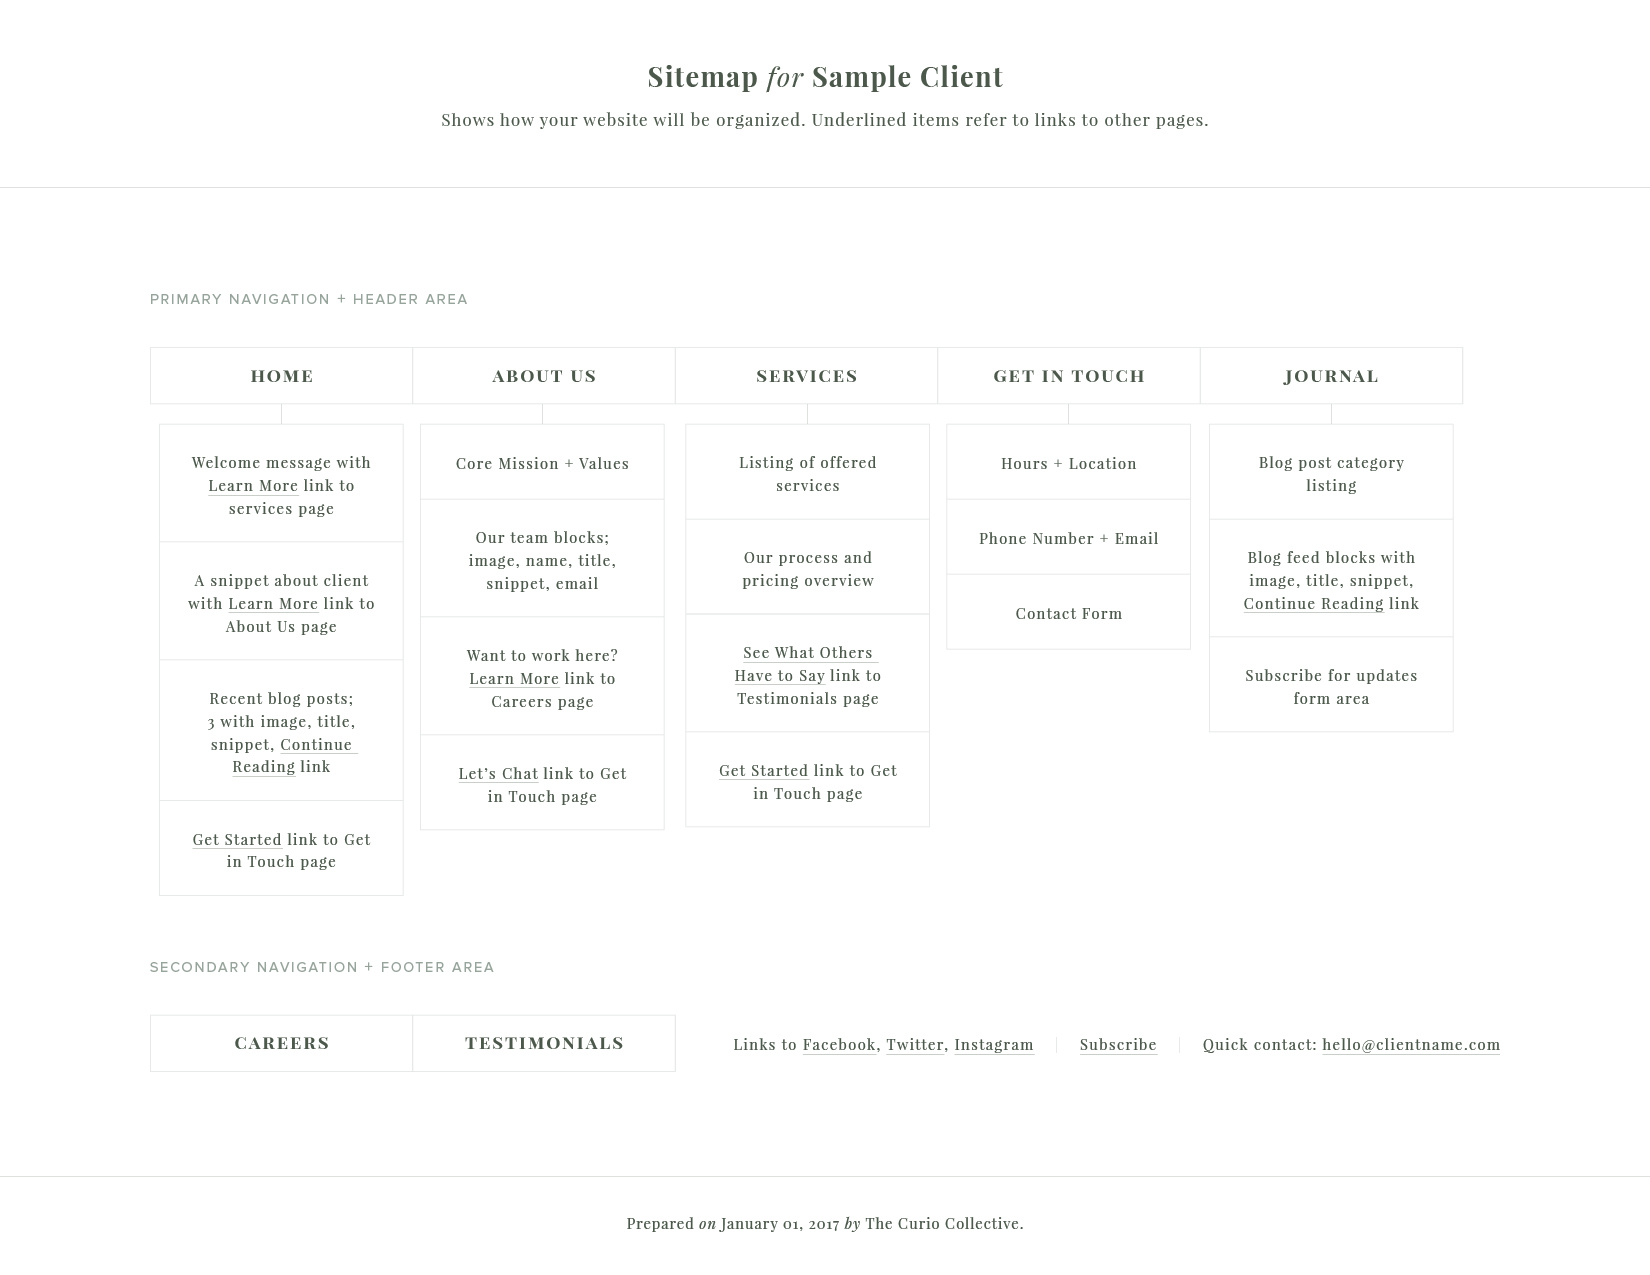 Sample Sitemap by The Curio Collective